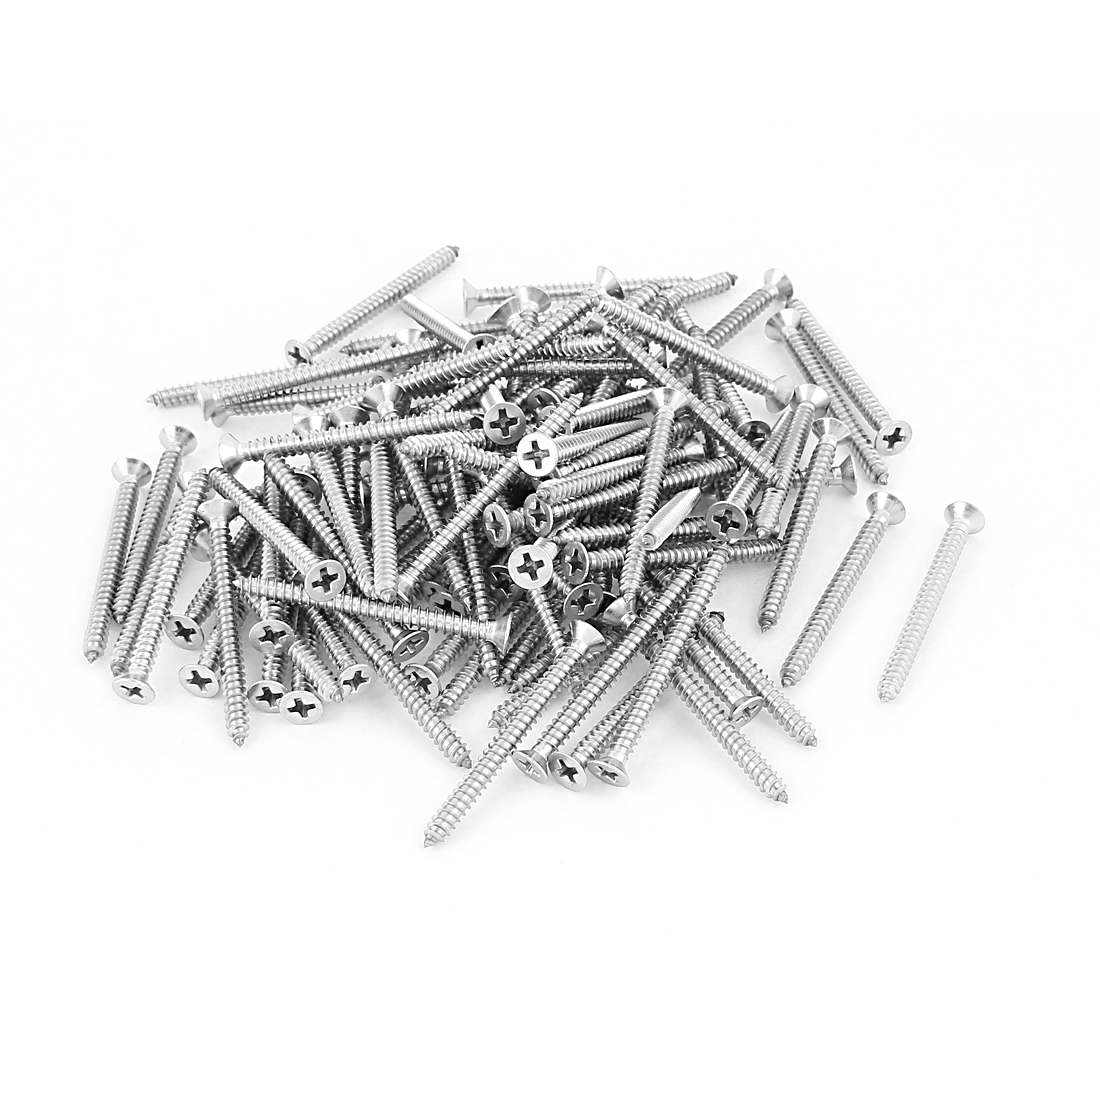 M4x45mm Phillips Flat Head Stainless Steel Self Tapping Screws Fastener 100Pcs